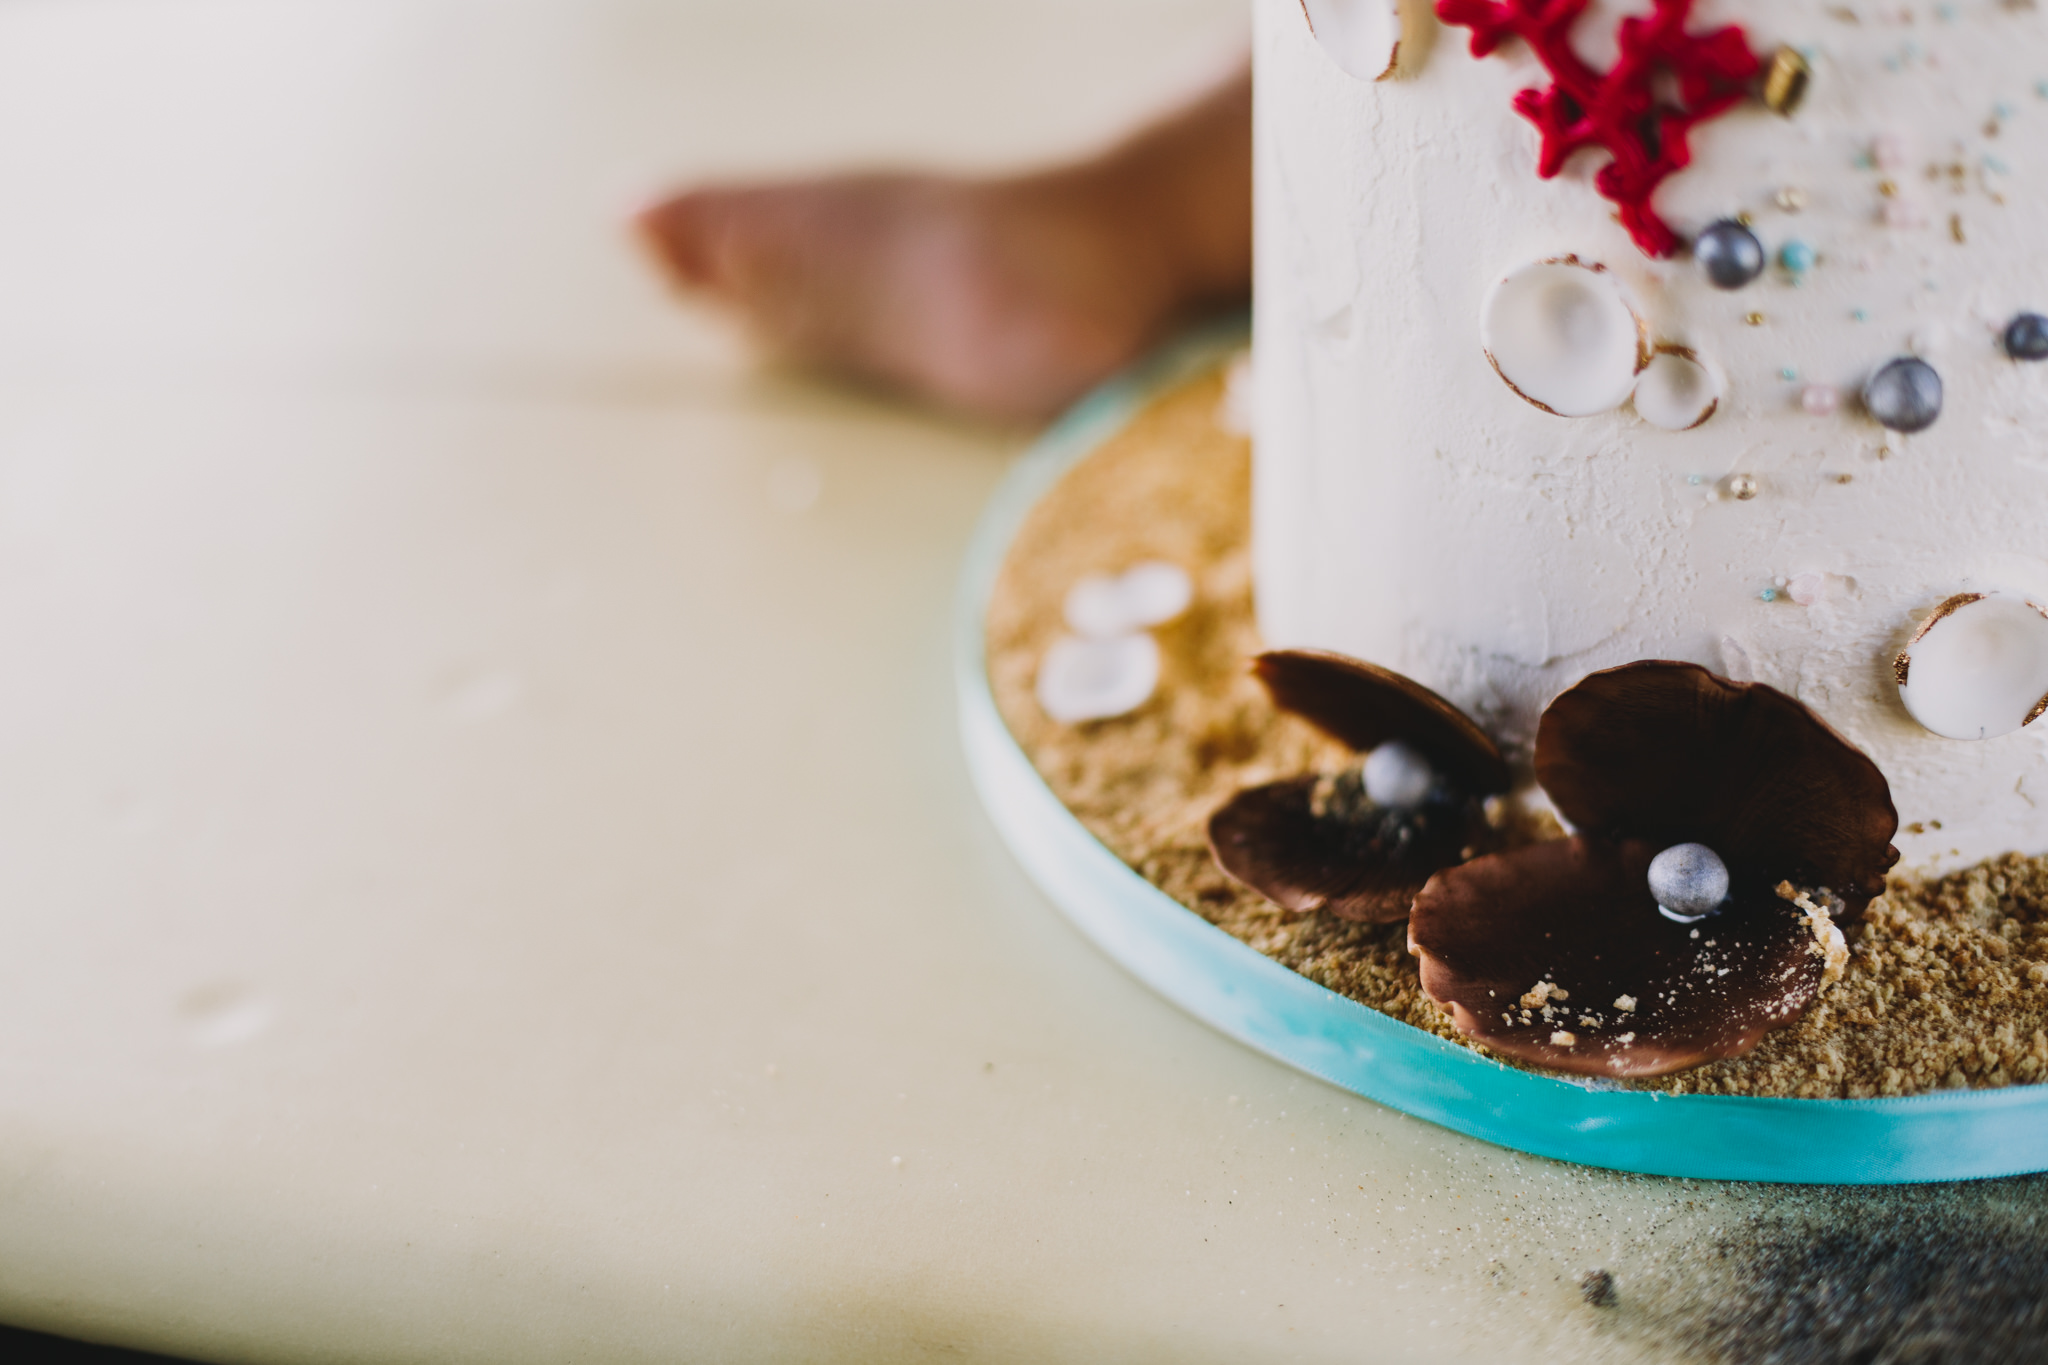 Archer Inspired Photography Cake Smash First Birthday Lifestyle Natural Light Documentary Family Photographer-37.jpg